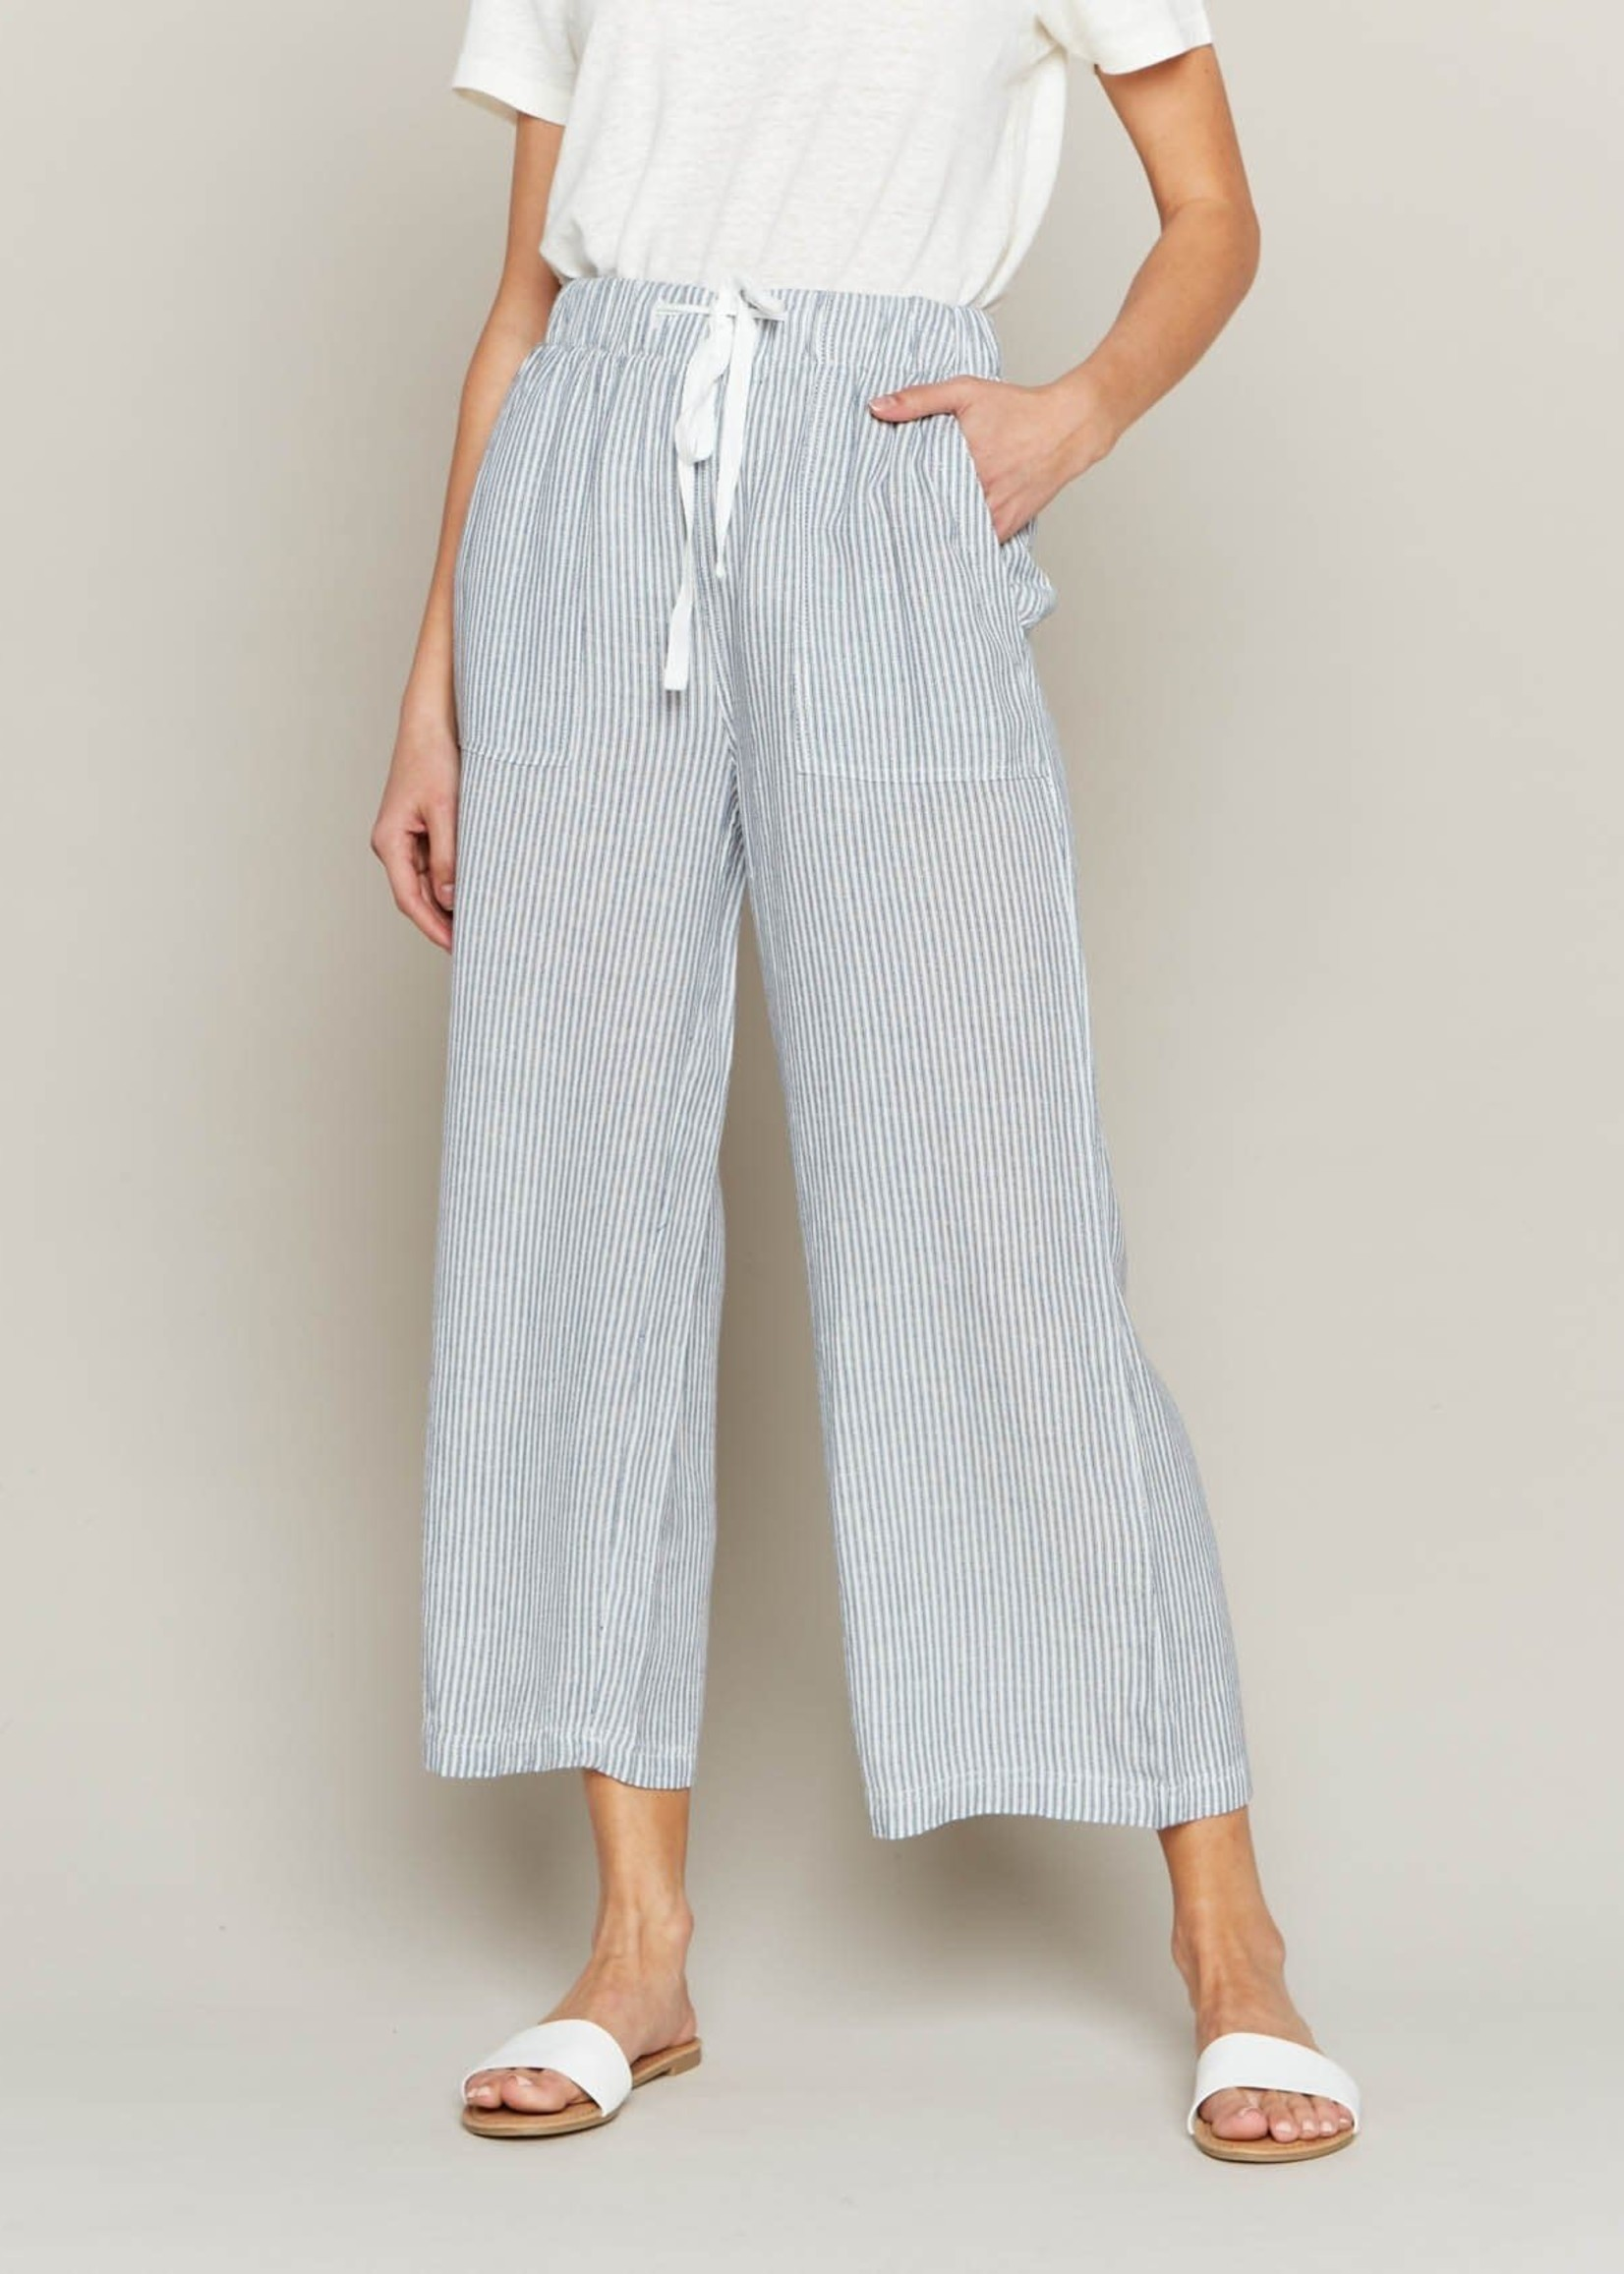 THREAD & SUPPLY DEEP SEA PANT